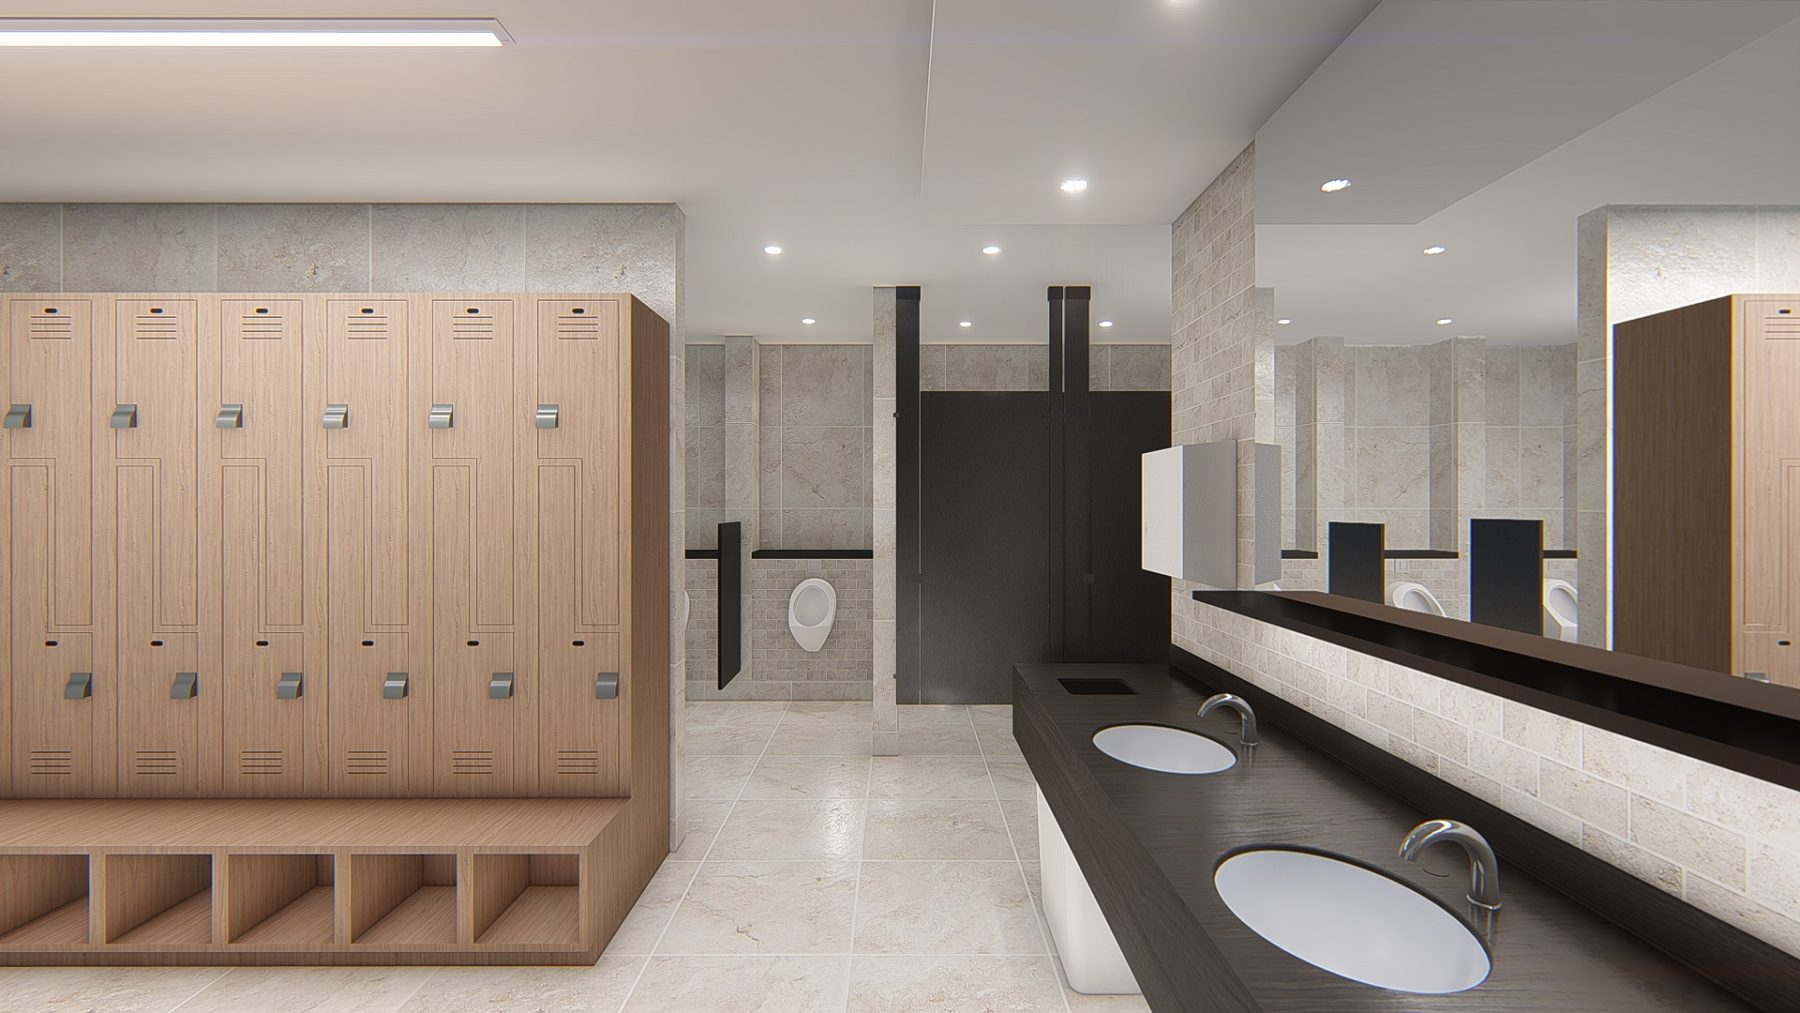 Interior Design for Changing Rooms, Restrooms and Recreation Zone Renovation